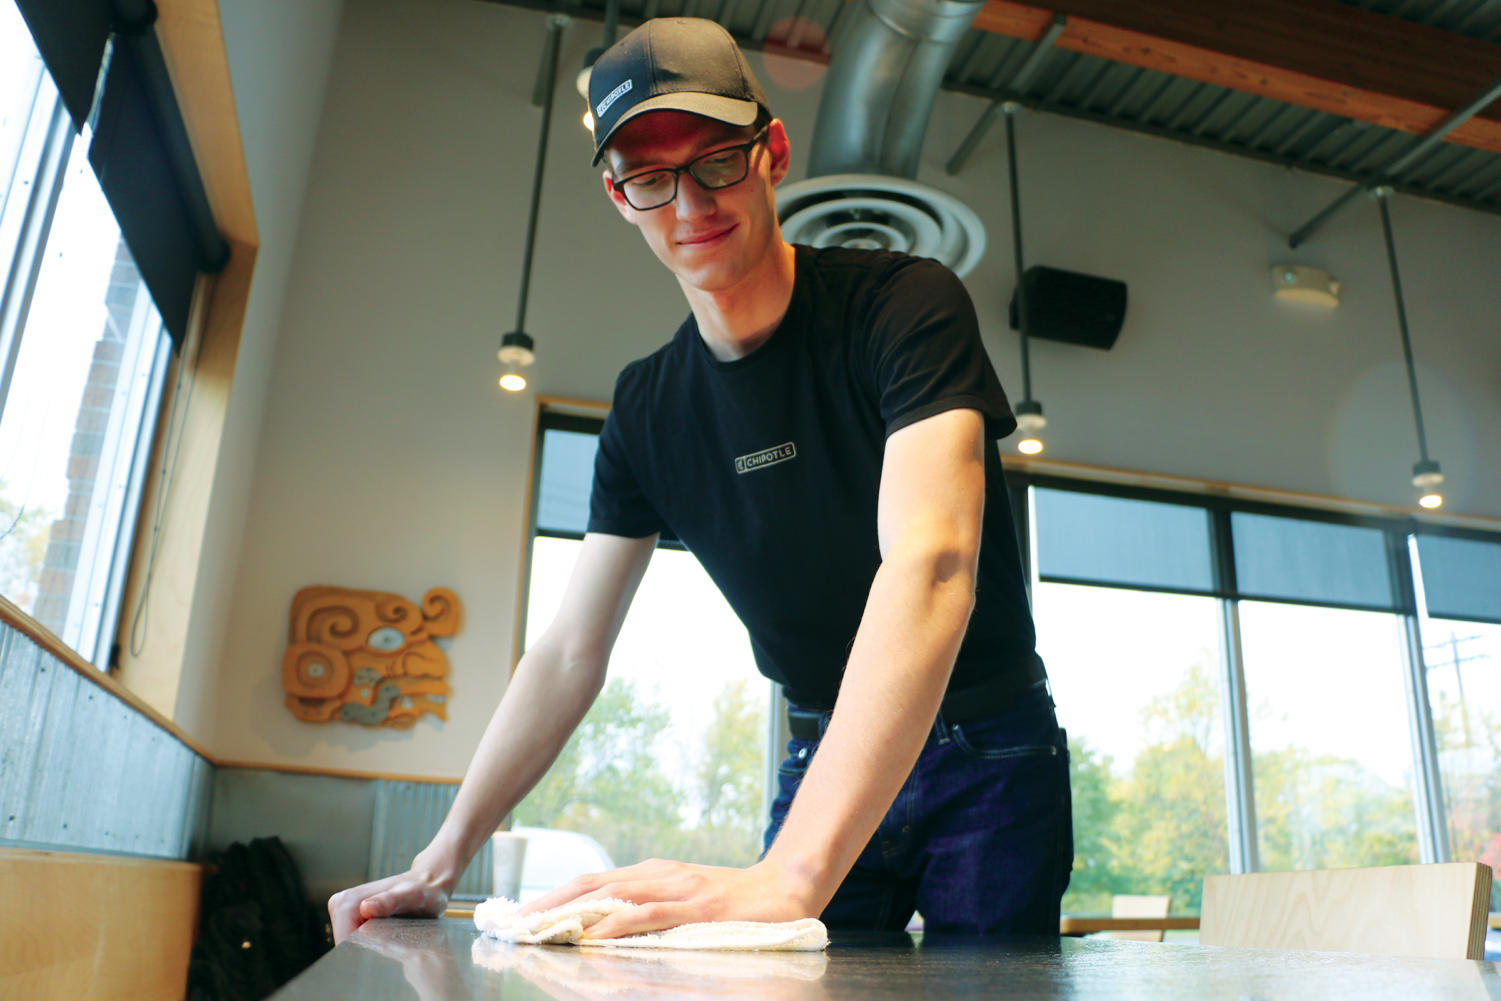 Ben Ring, Chipotle employee and senior, wipes down a table during one of his shifts at Chipotle. Ring said cleaning up is one of the responsibilities he has as a worker for Chipotle.